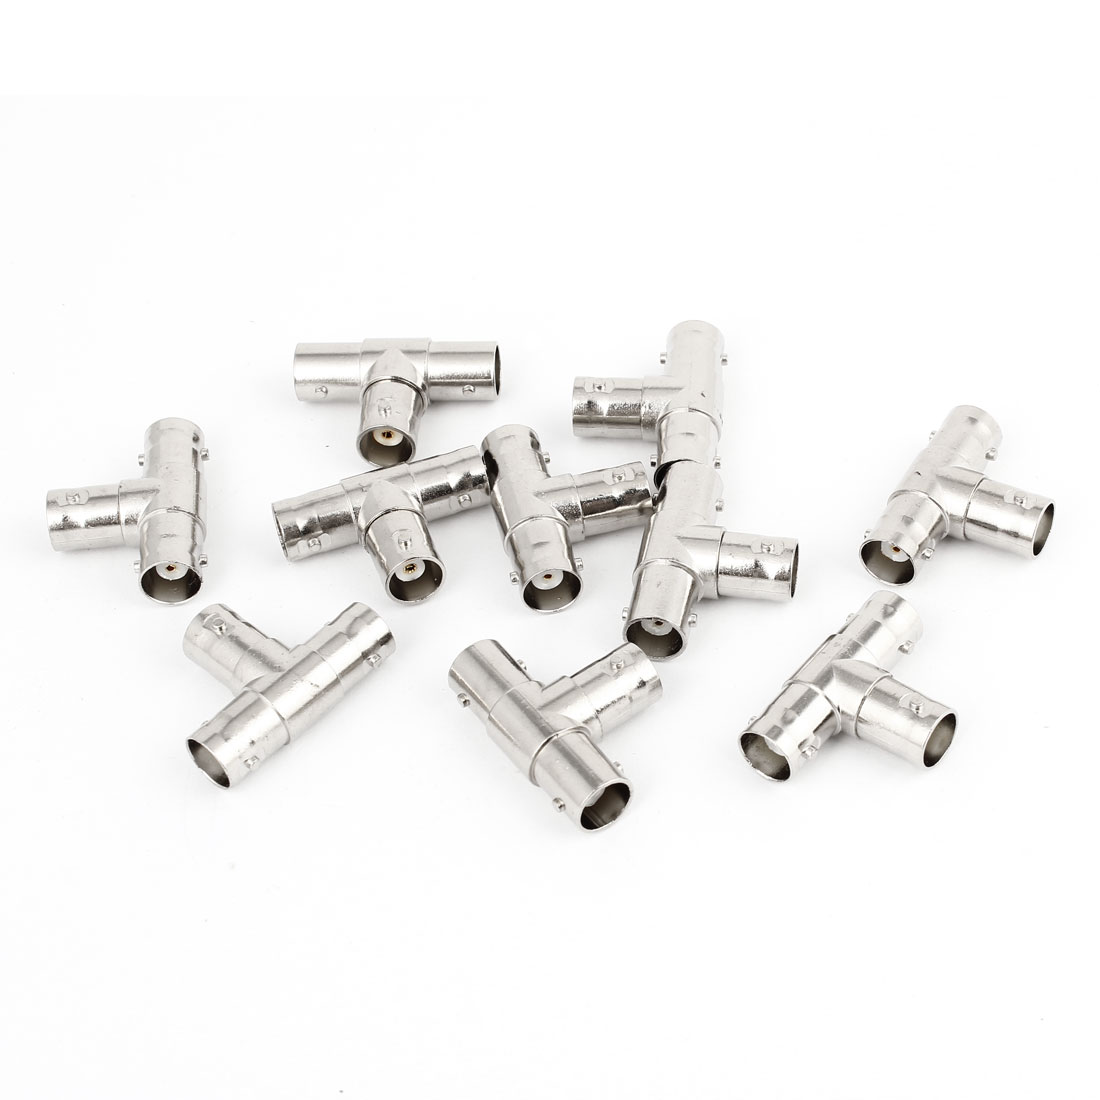 10pcs BNC Female to Dual BNC Female Plug T Adapter Connector Silver Tone